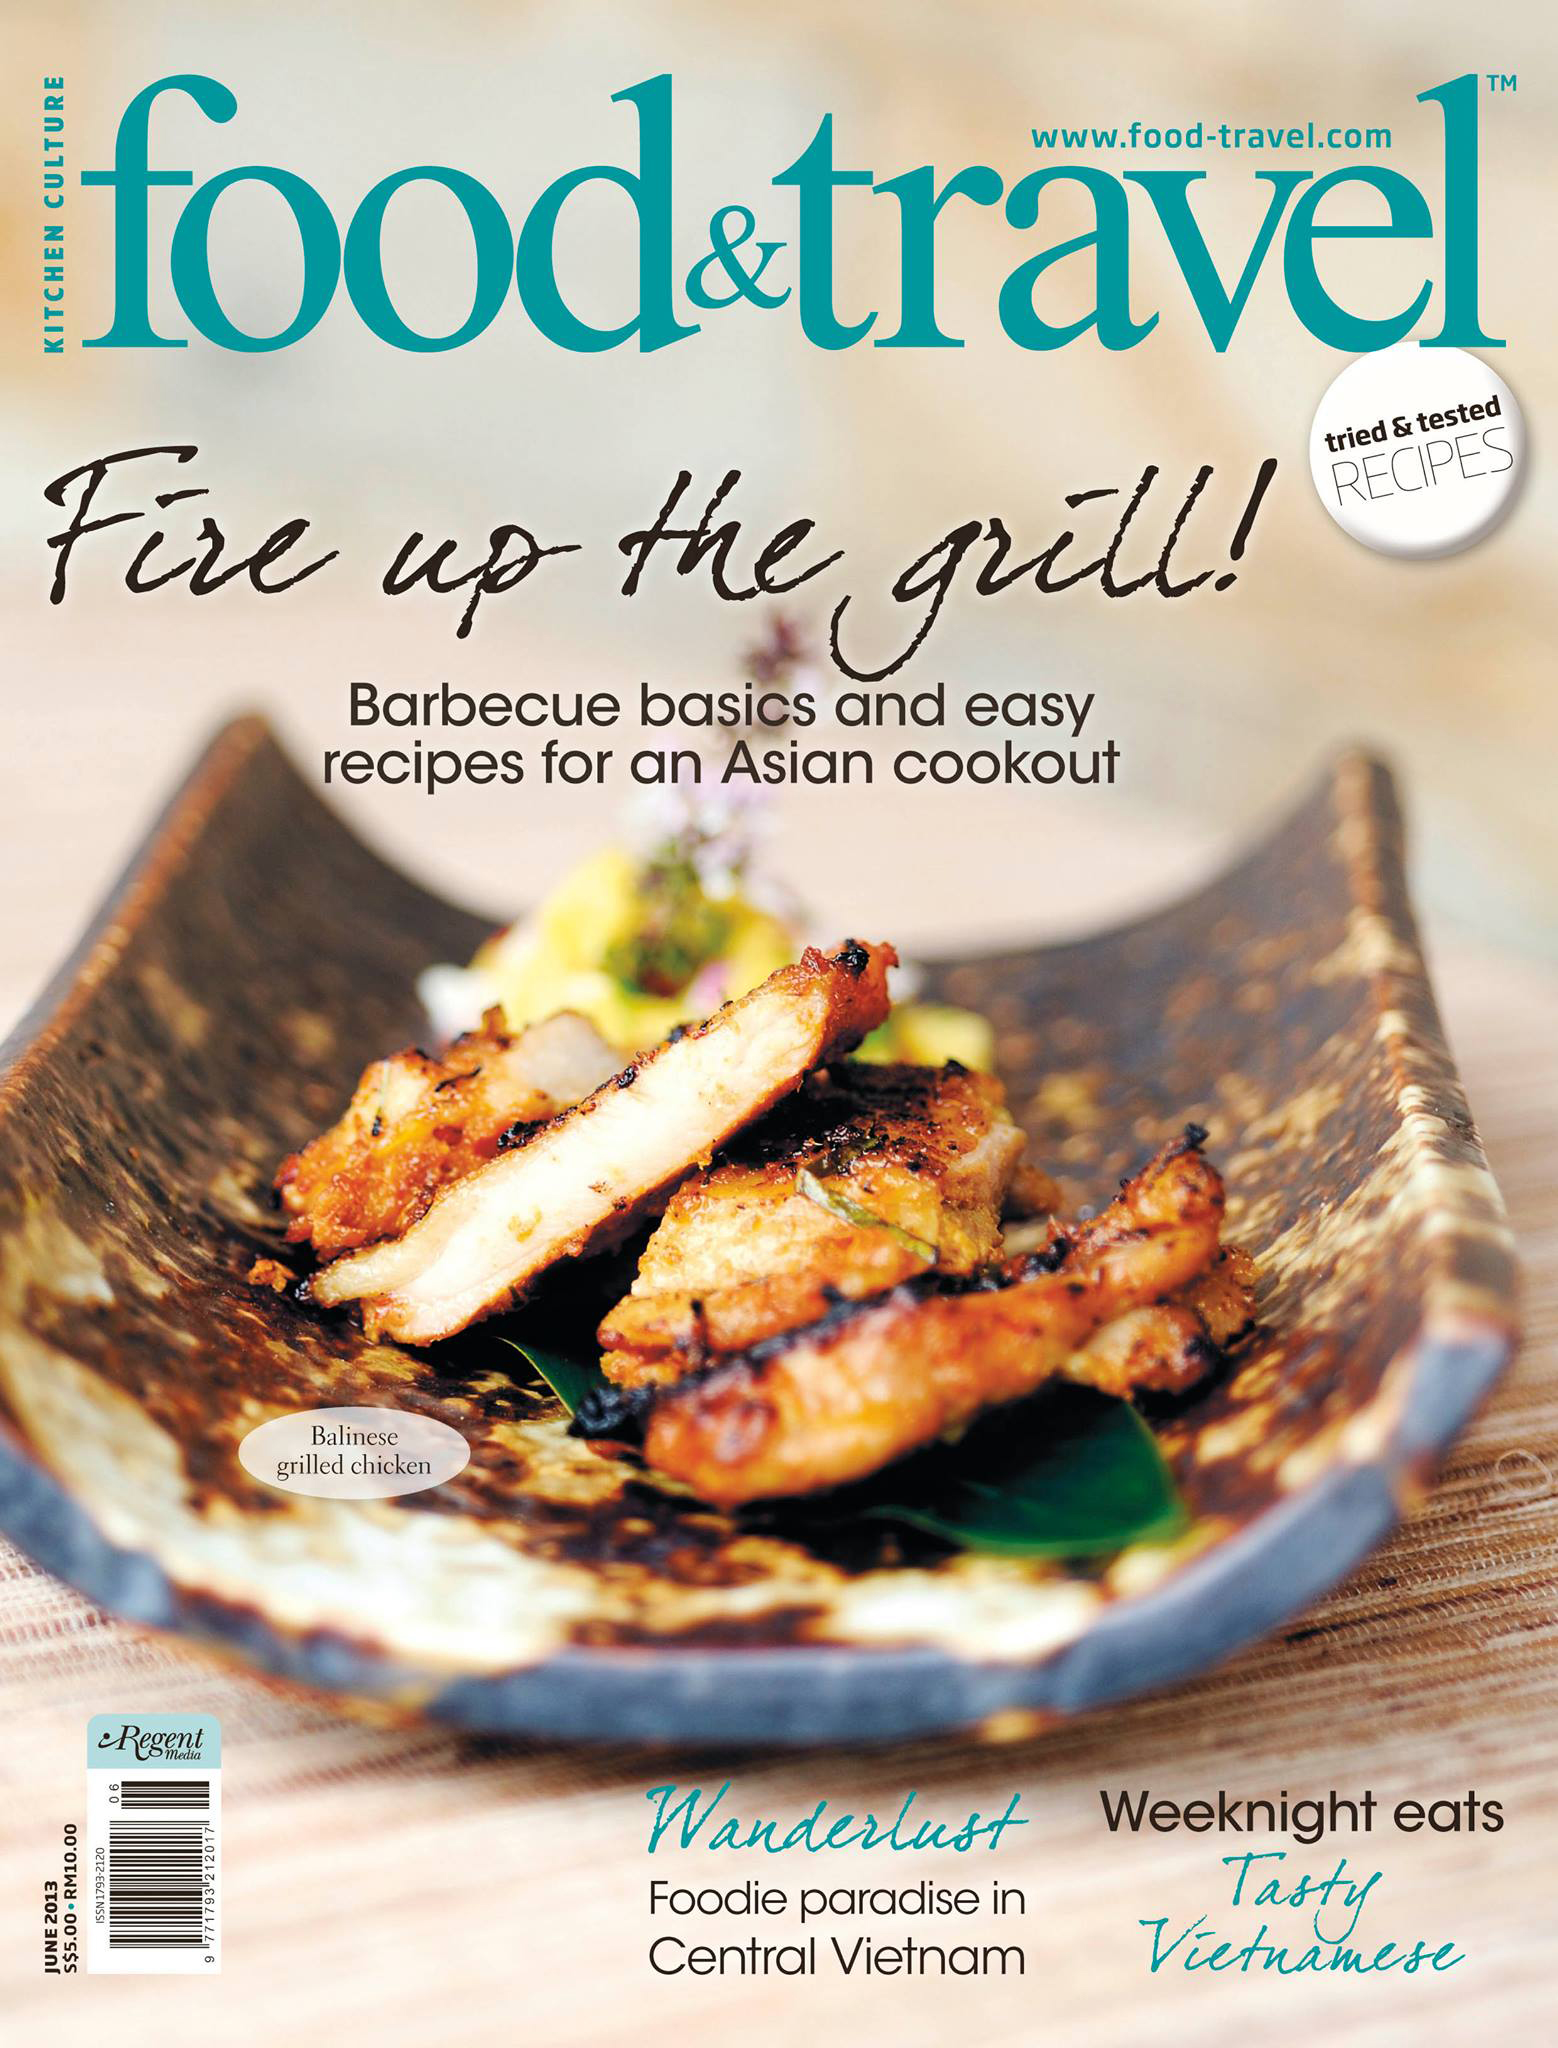 Food and Travel Cover copy.jpg